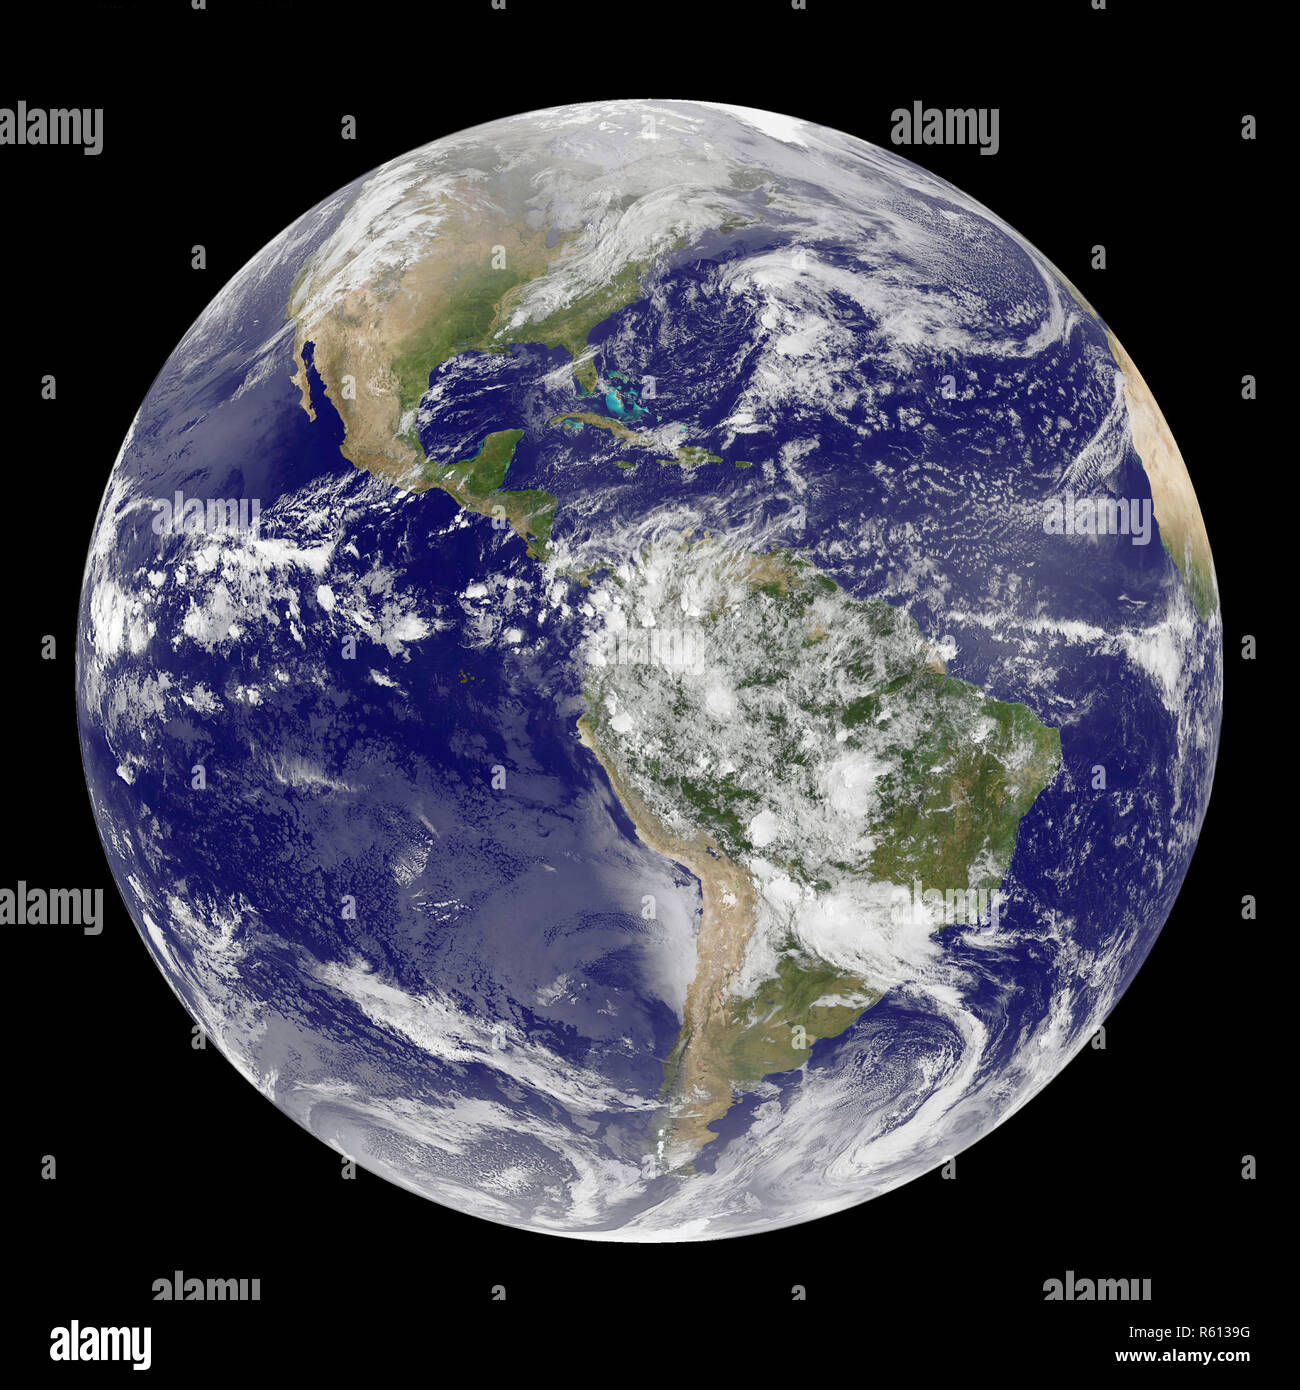 Satellite View of the Americas on Earth Day.jpg - R6139G  - Stock Image